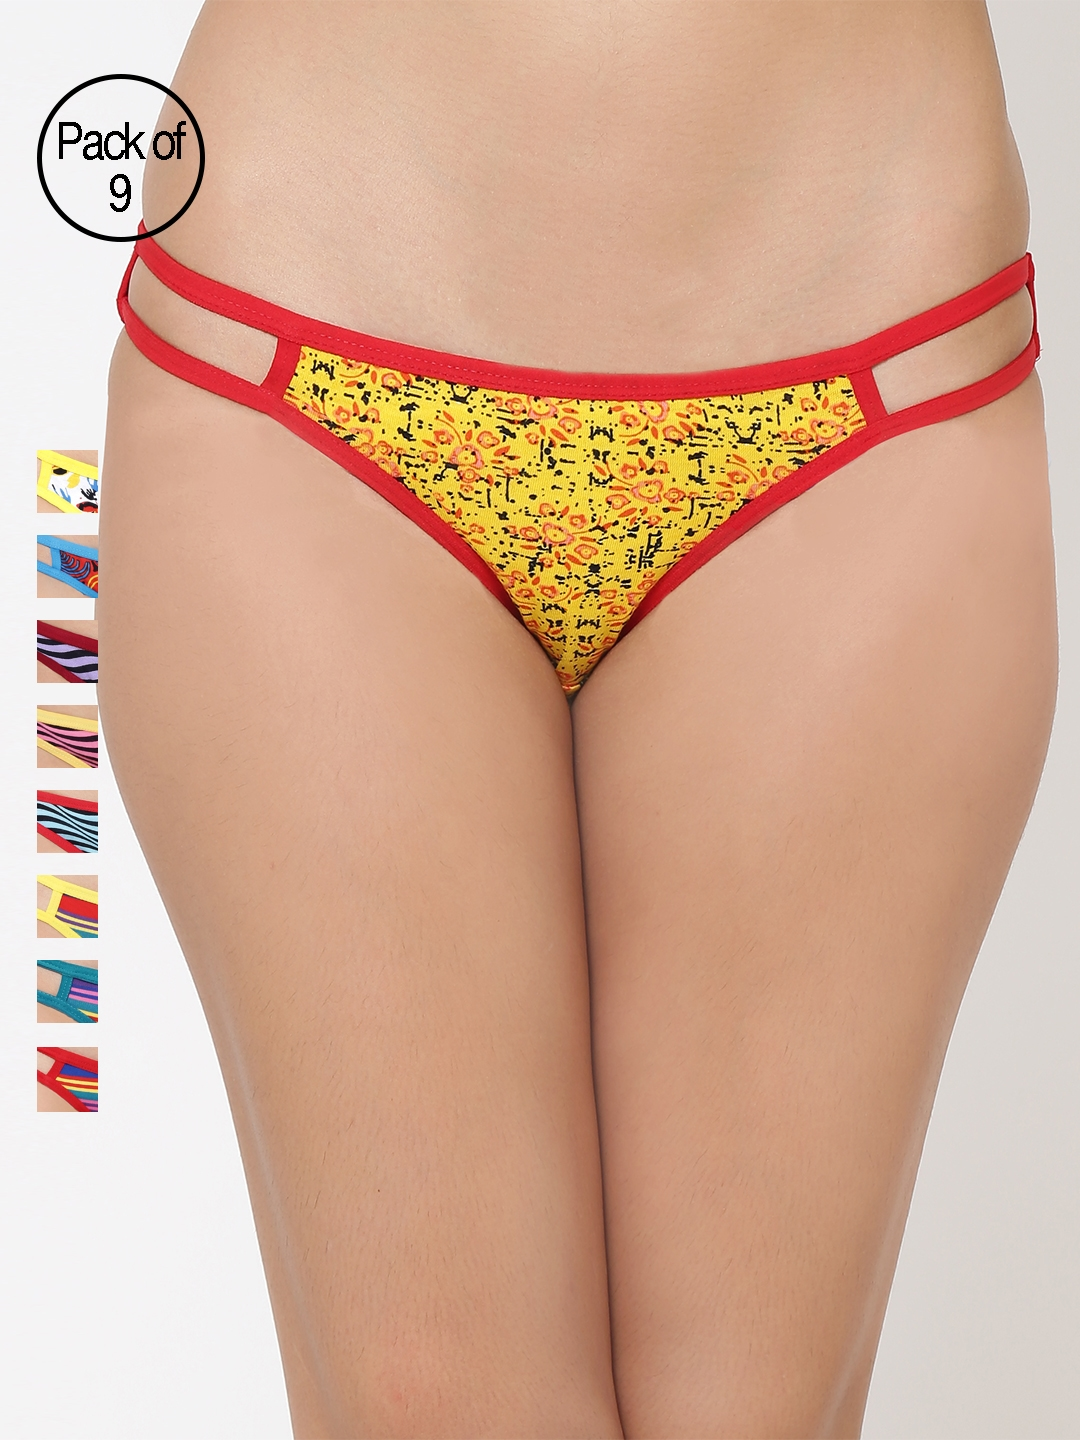 Leading Lady pack of 9 colorful briefs